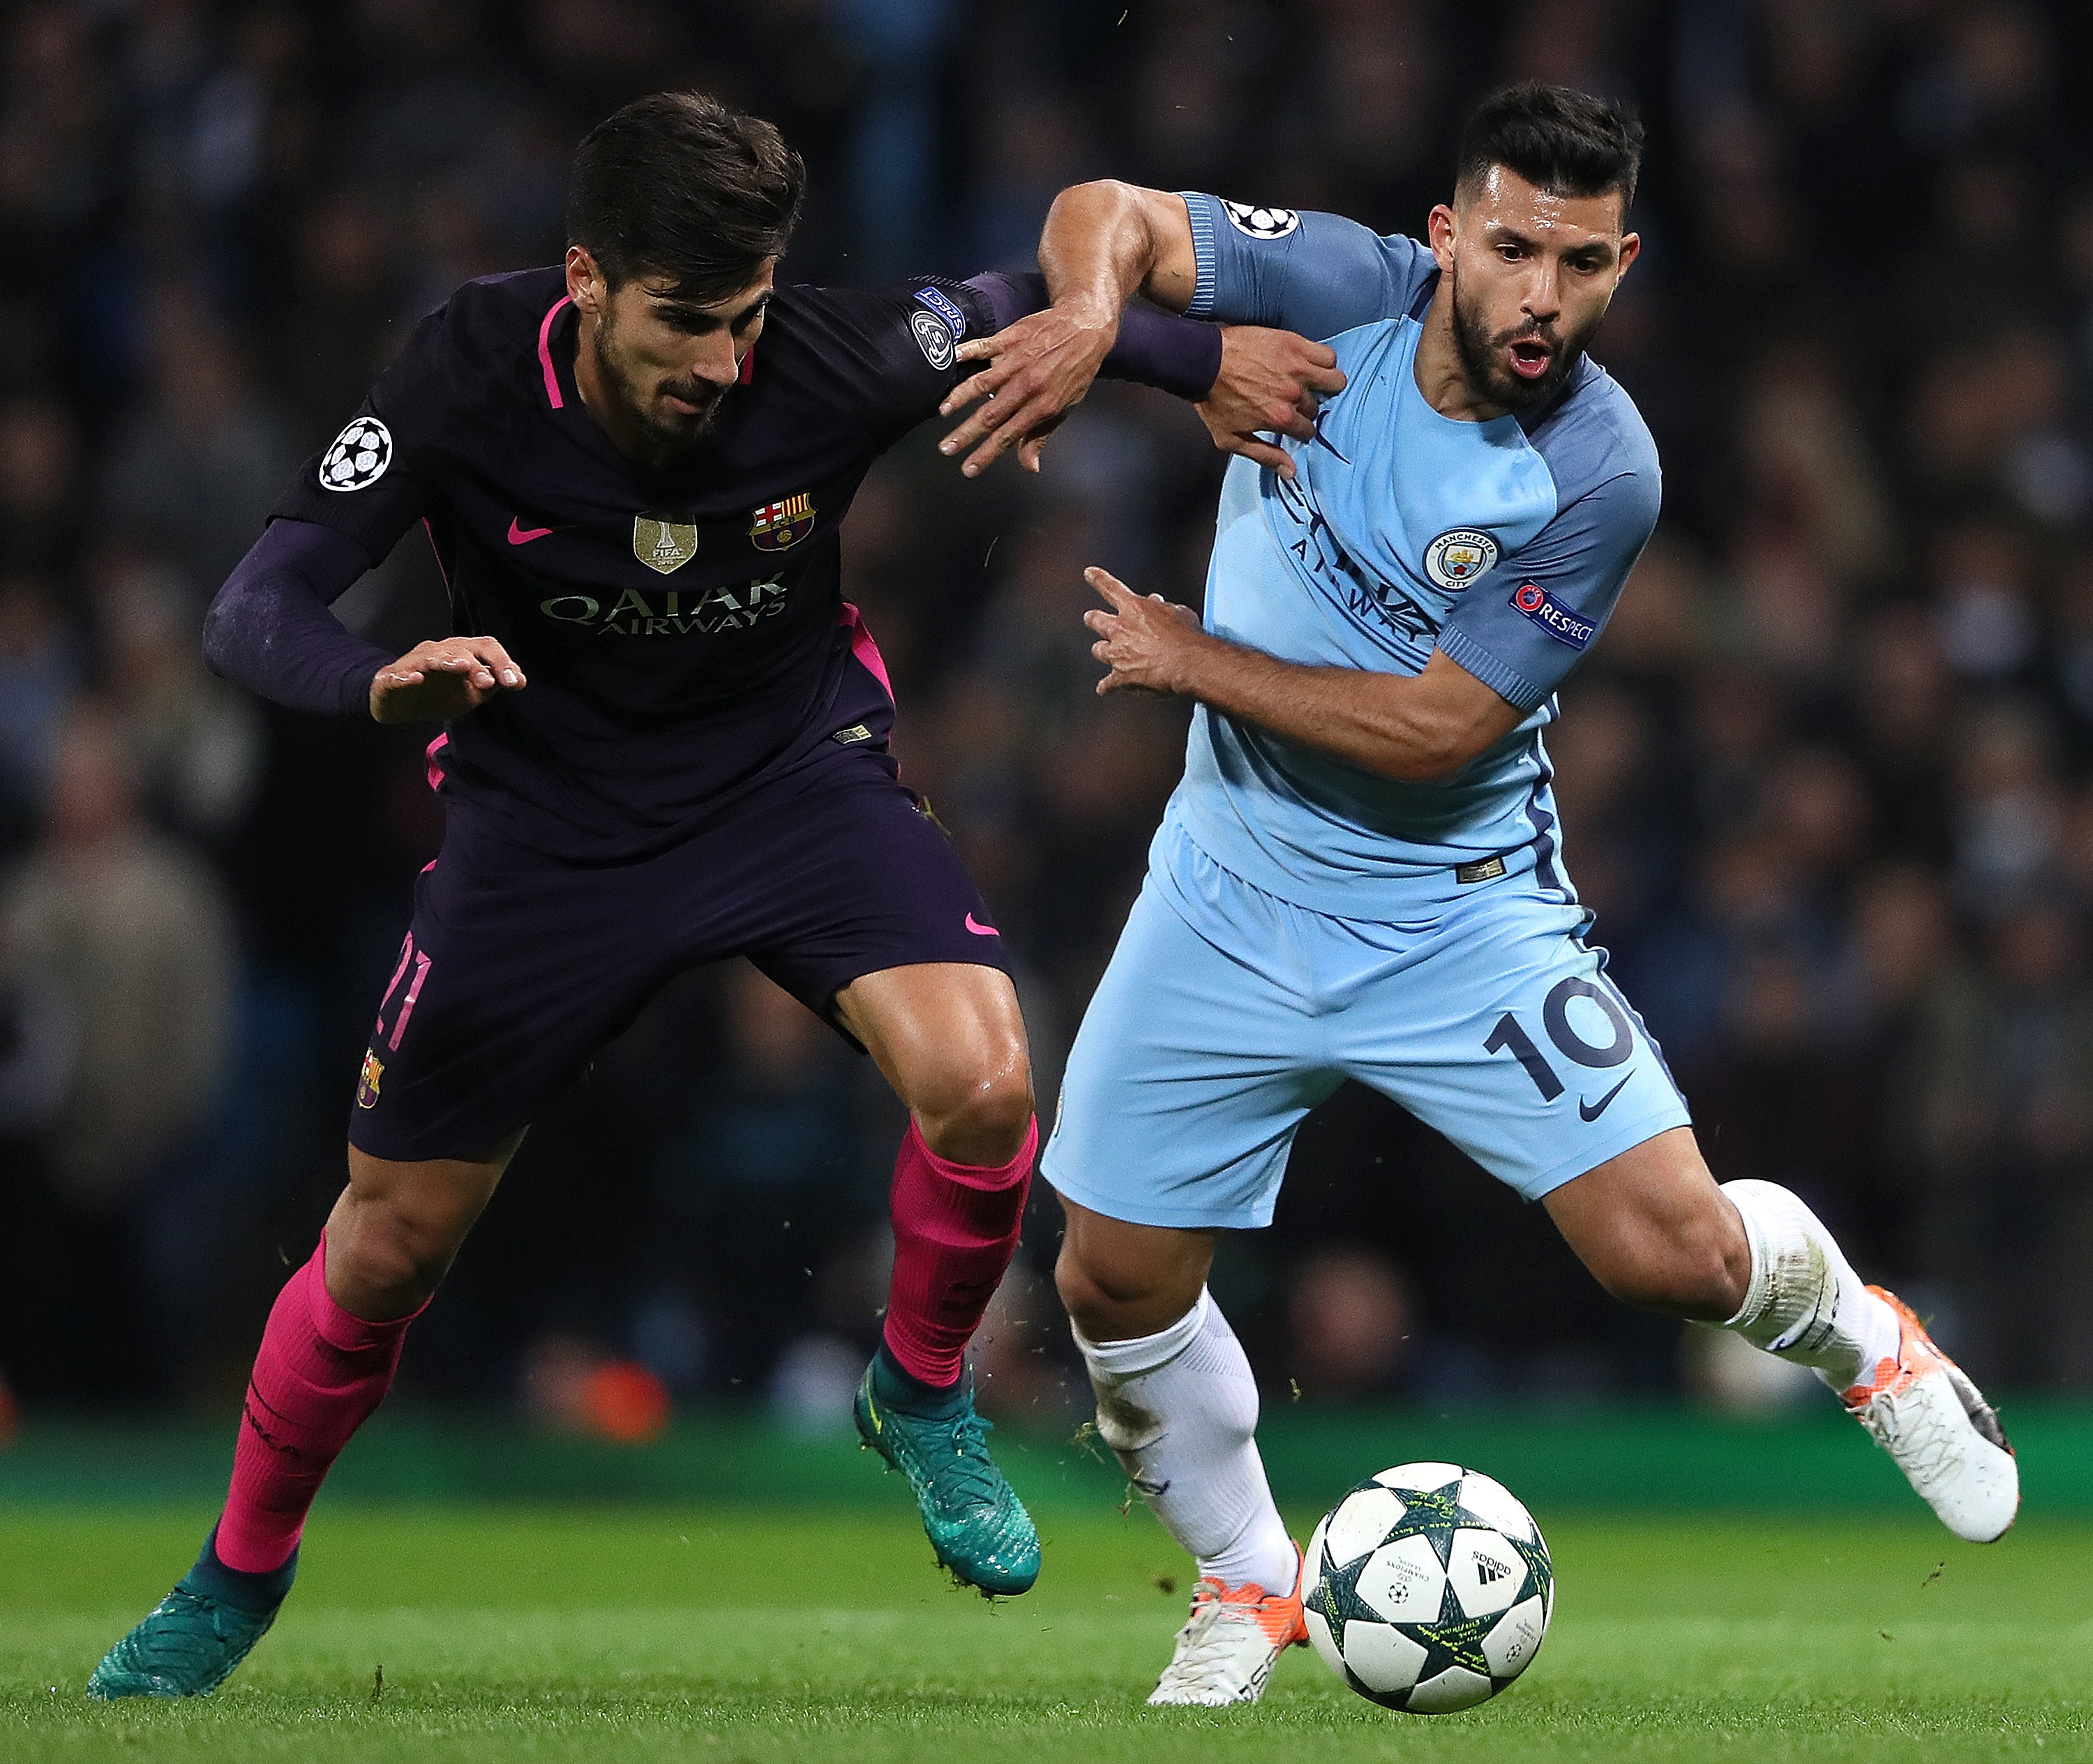 Manchester city vs barcelona betting preview best odds on sports betting